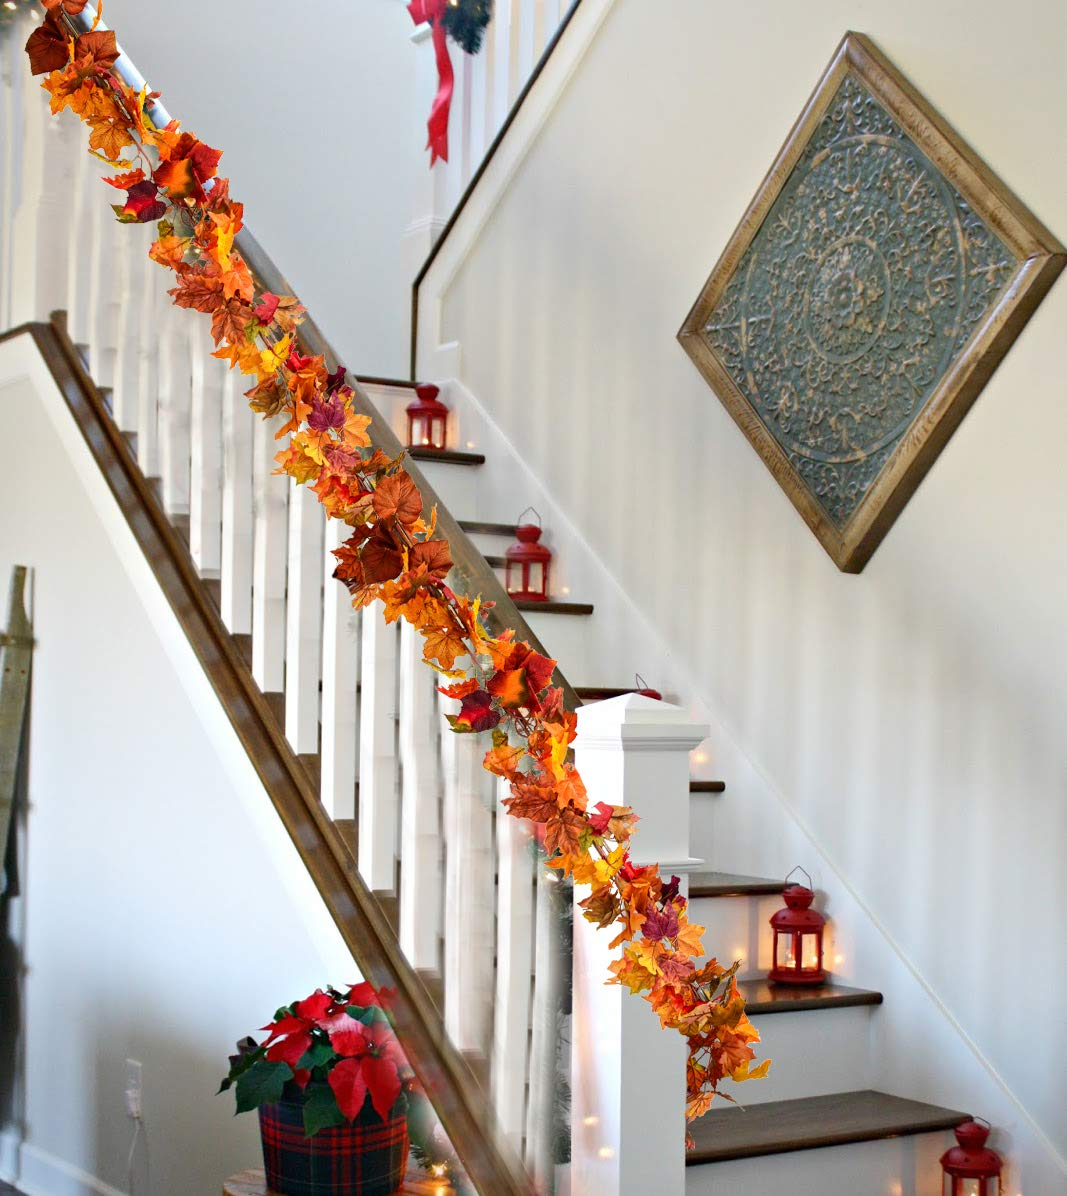 2.3M//7.5Ft//Piece Hanging Vine Garland Artificial Autumn Foliage Garland Thanksgiving Decor for Home Wedding Fireplace Party Christmas Ucradle 5 Pack Artificial Autumn Fall Maple Leaf Garland